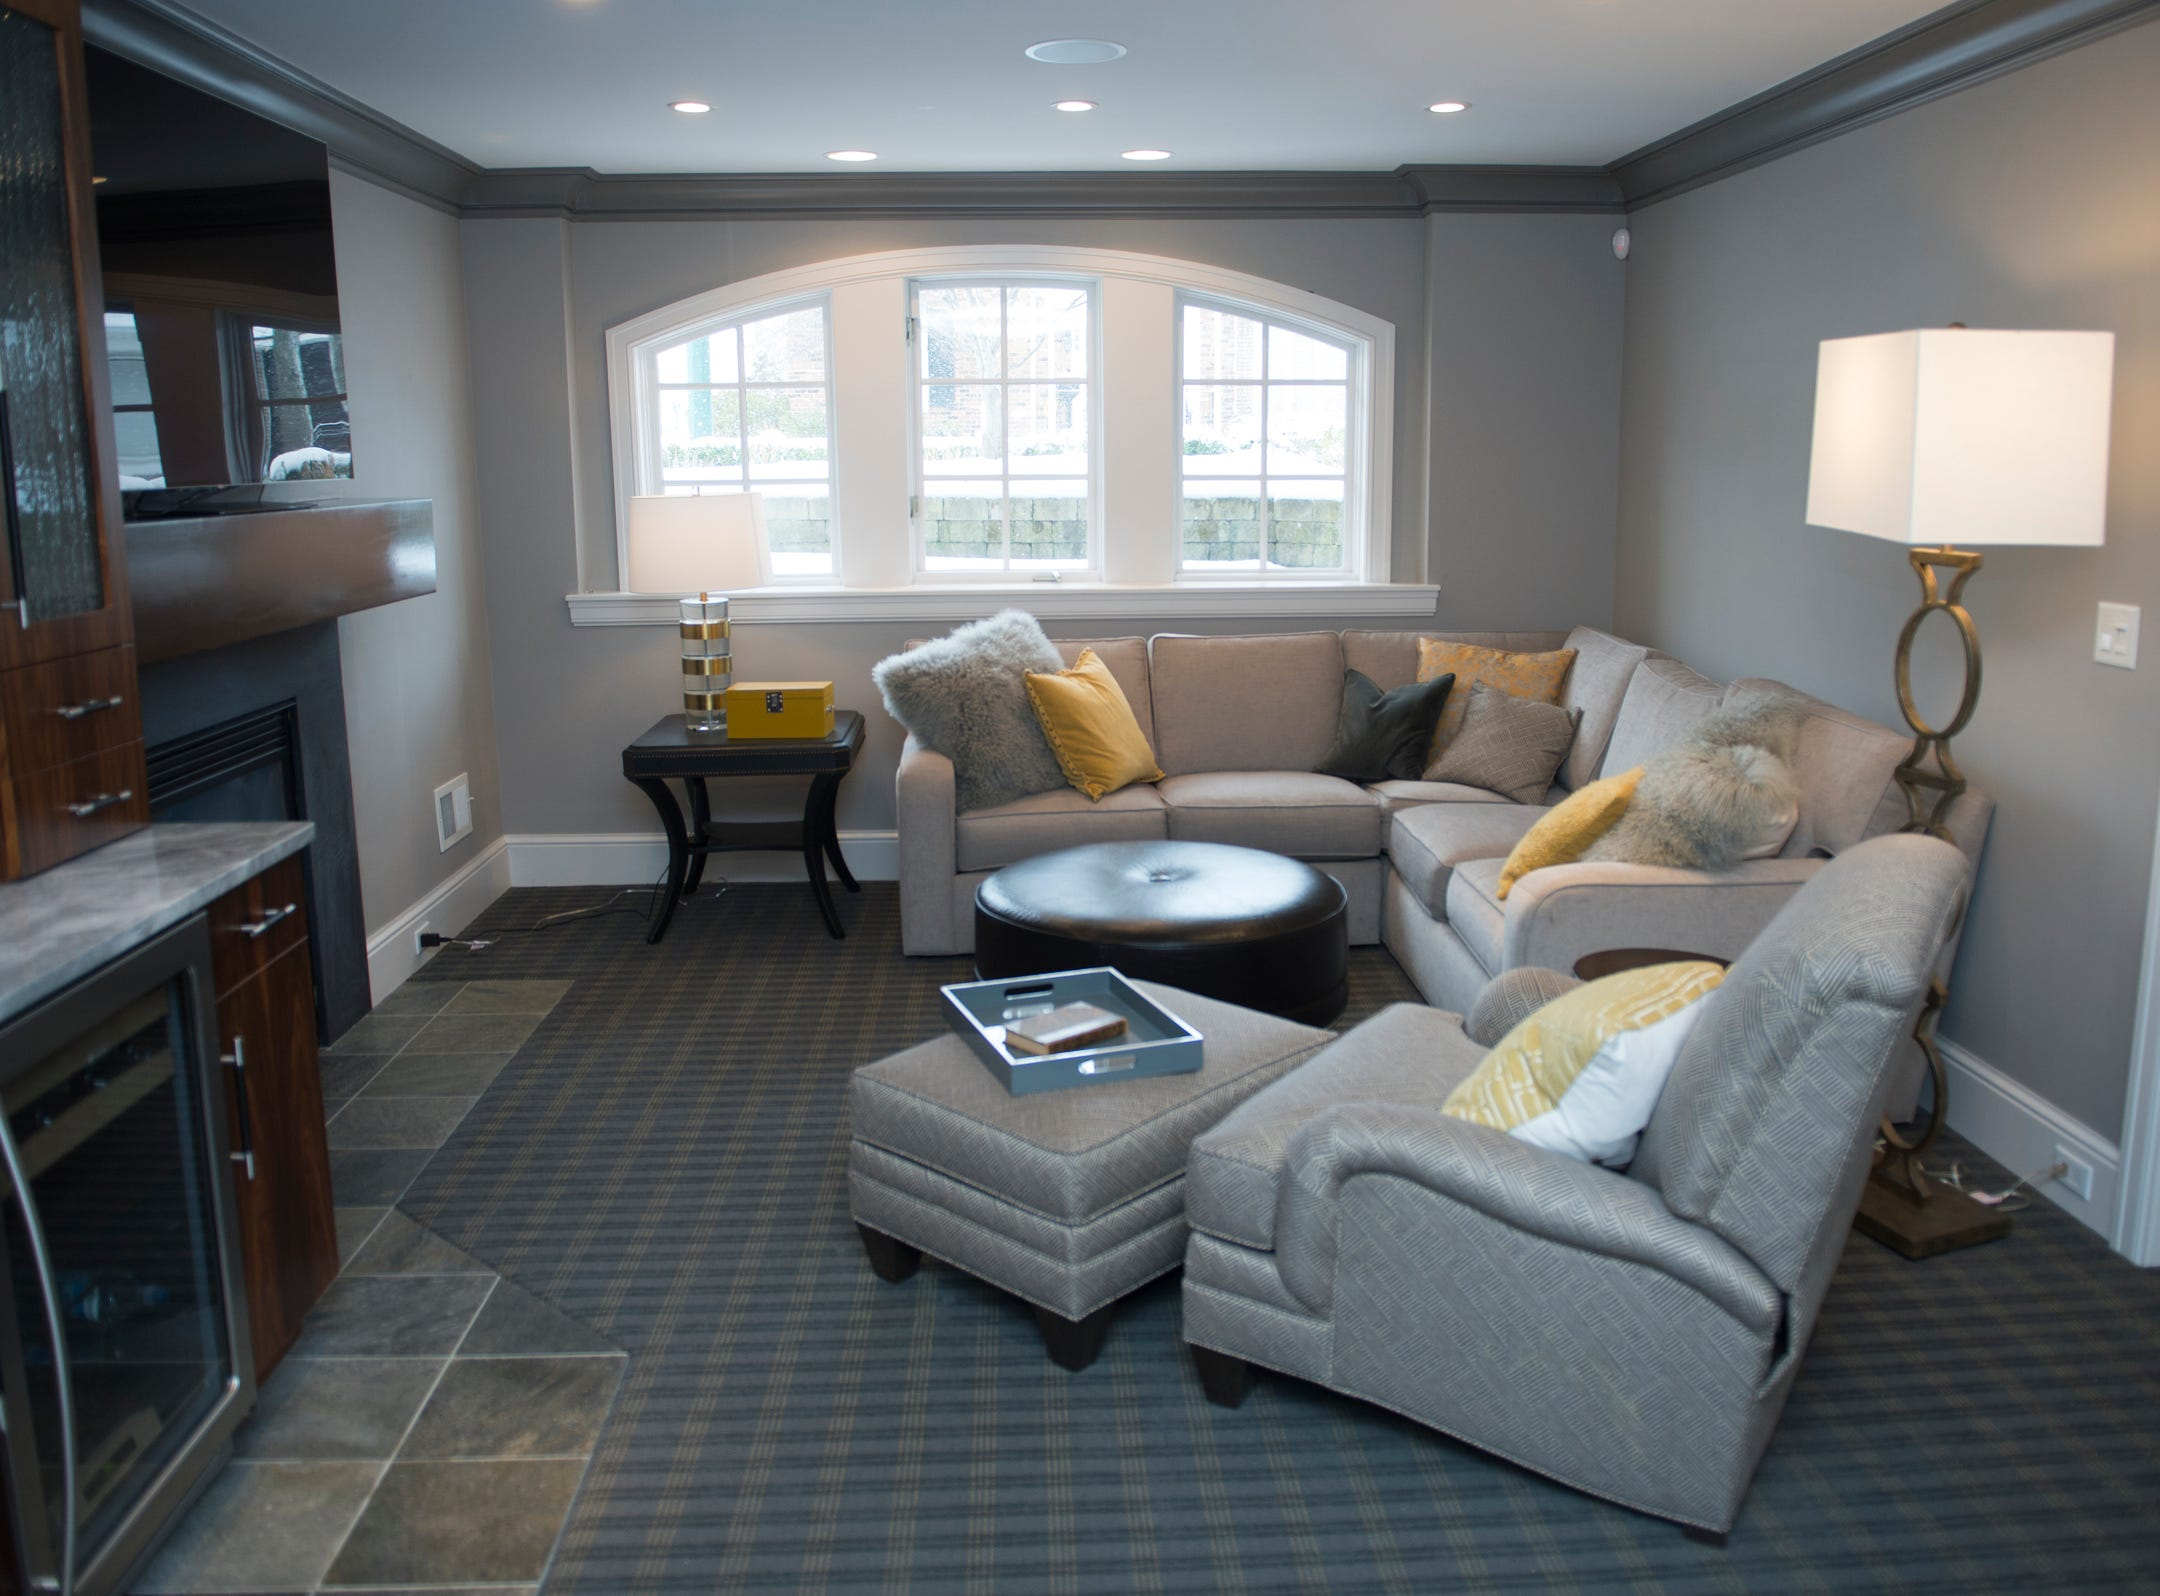 The basement hangout room includes a wet bar and fireplace.